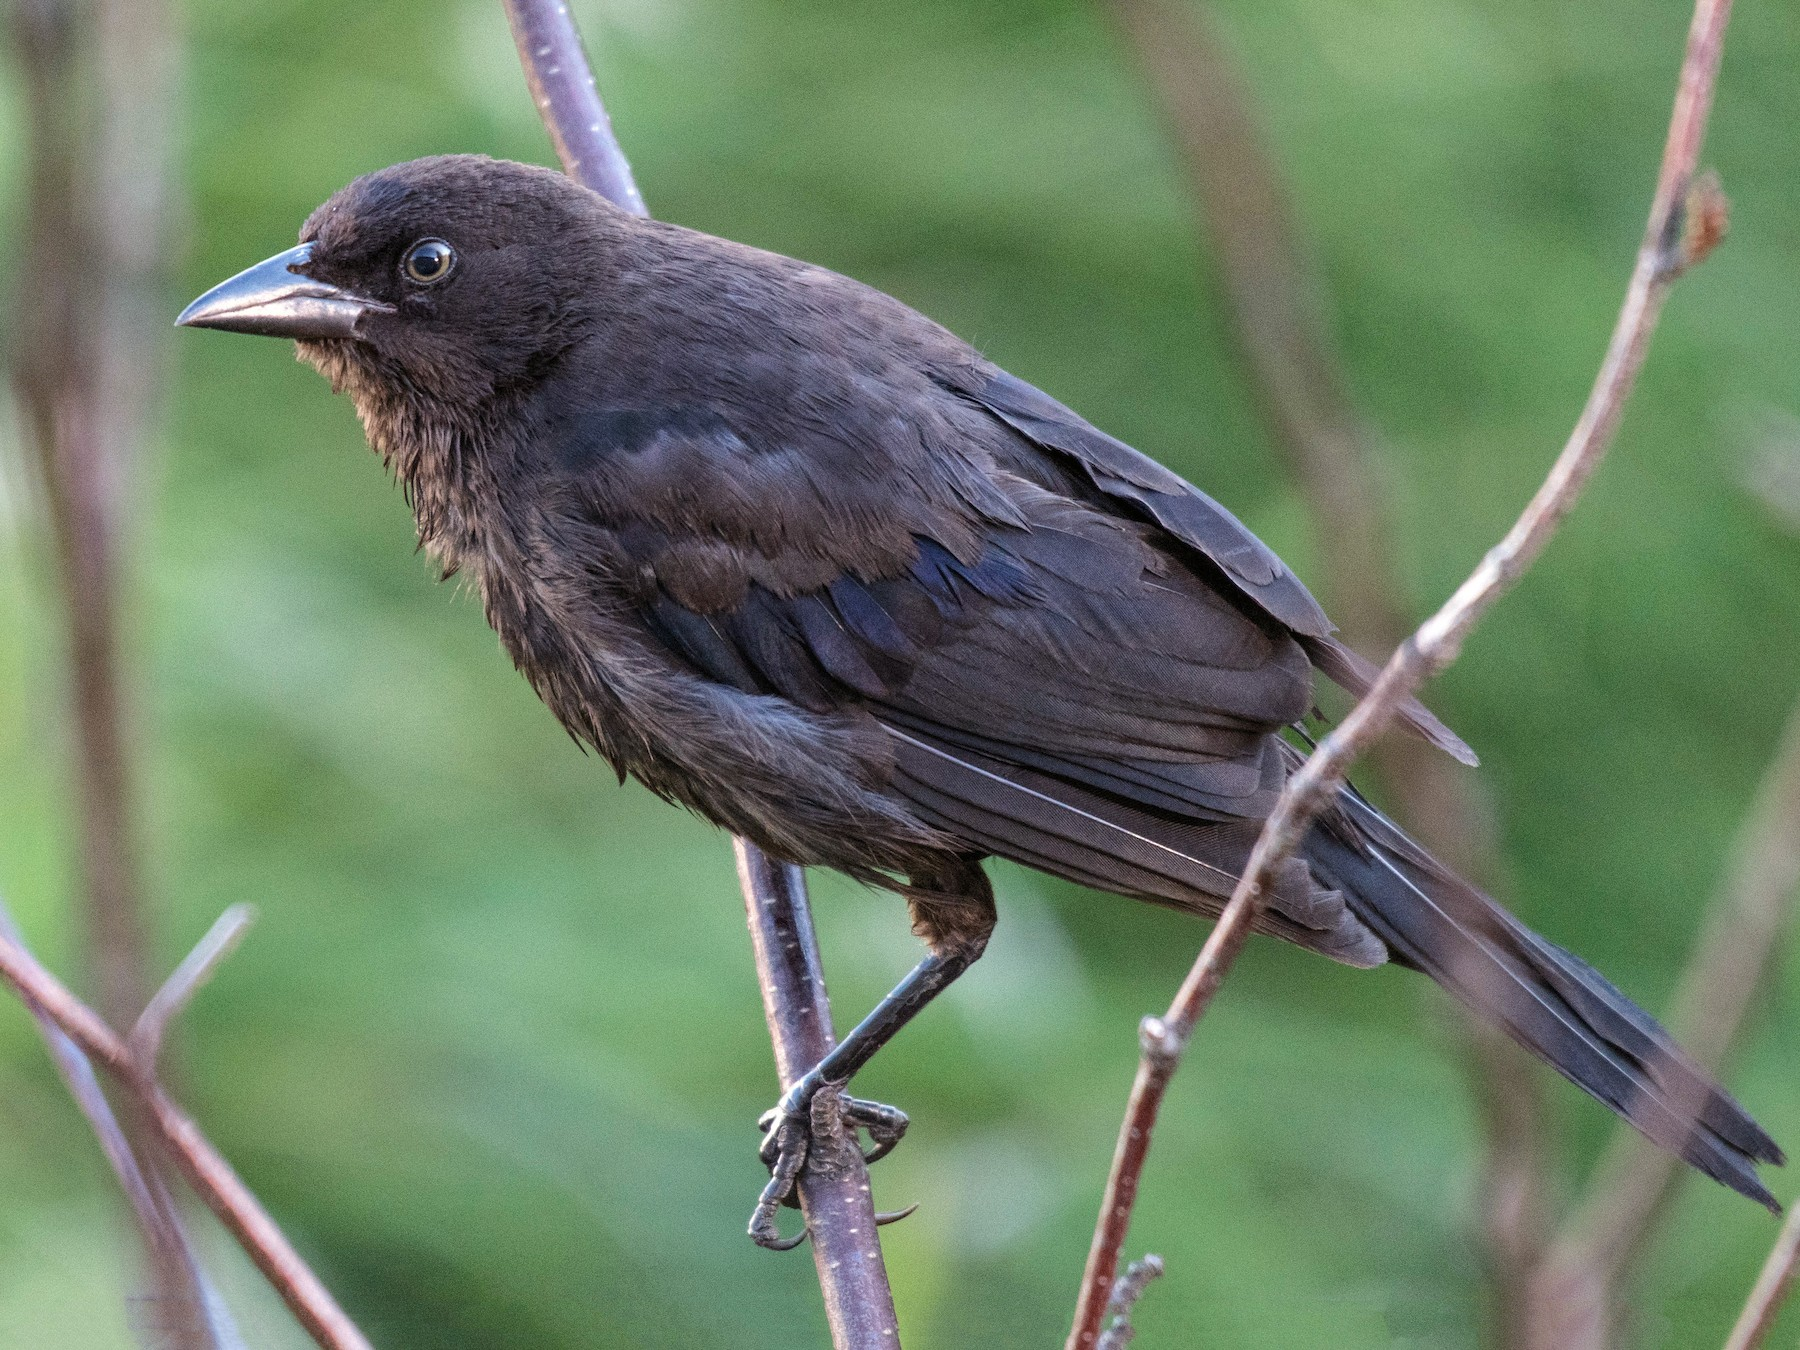 Common Grackle - Simon Boivin